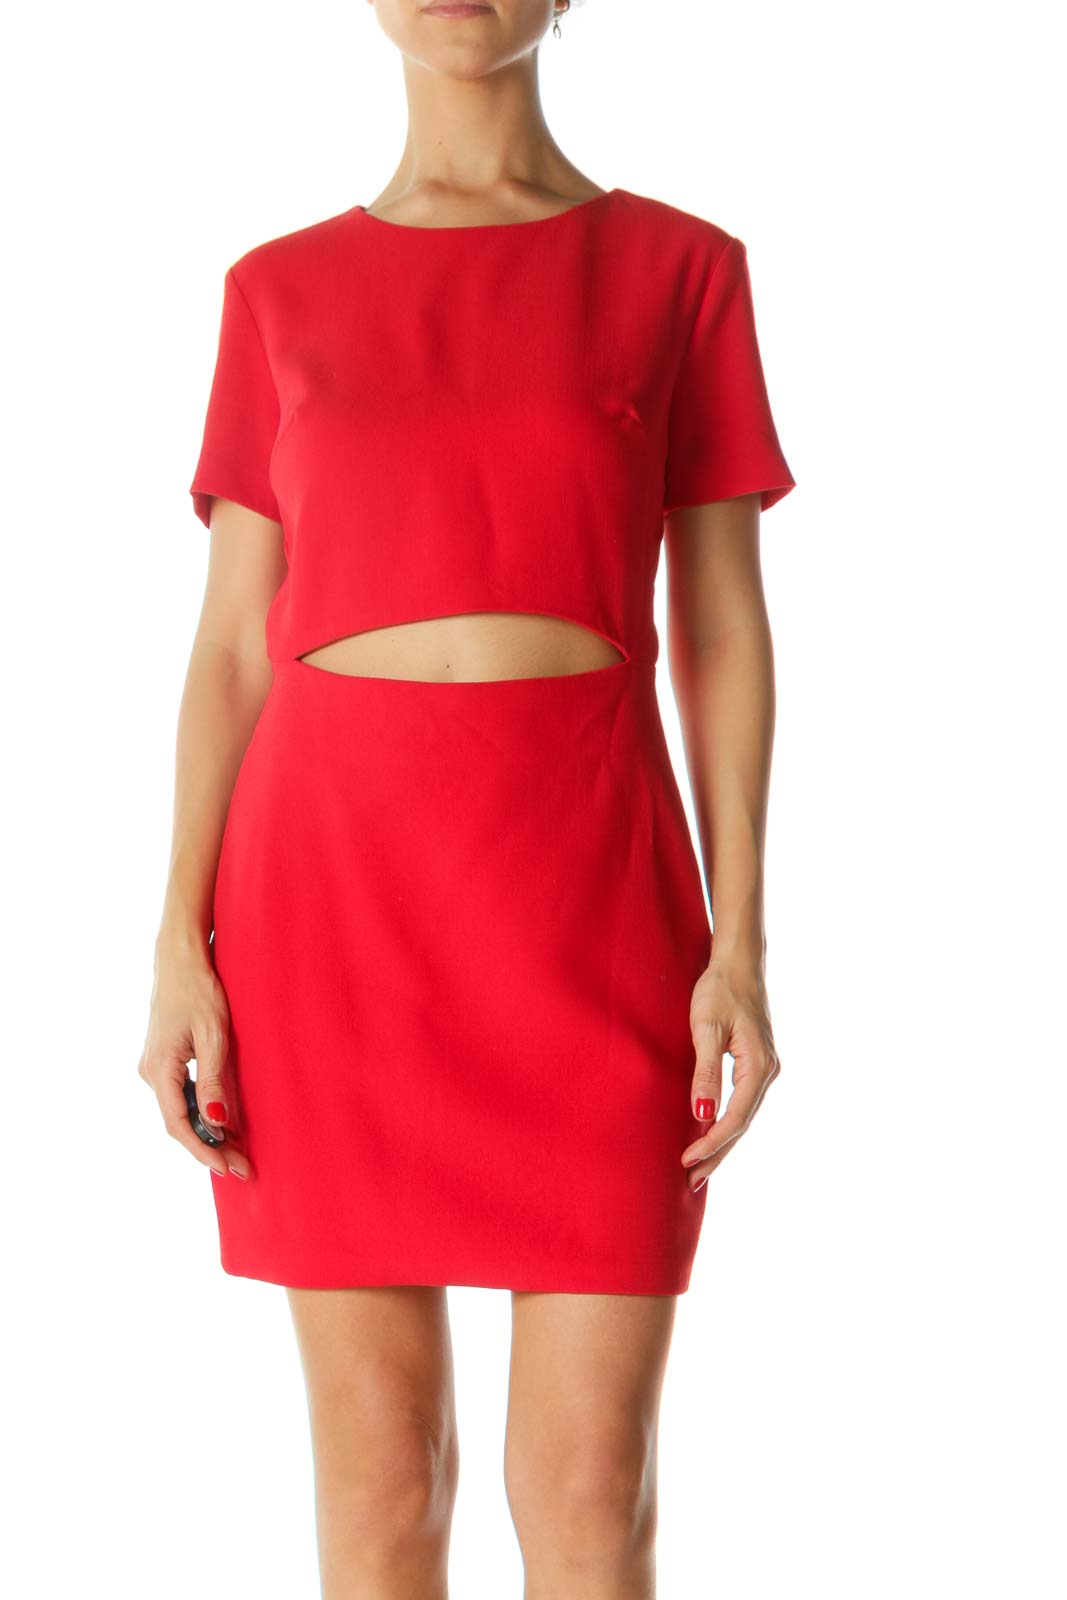 Red Round-Neck Short-Sleeve Cut-Out Textured Cocktail Dress Front